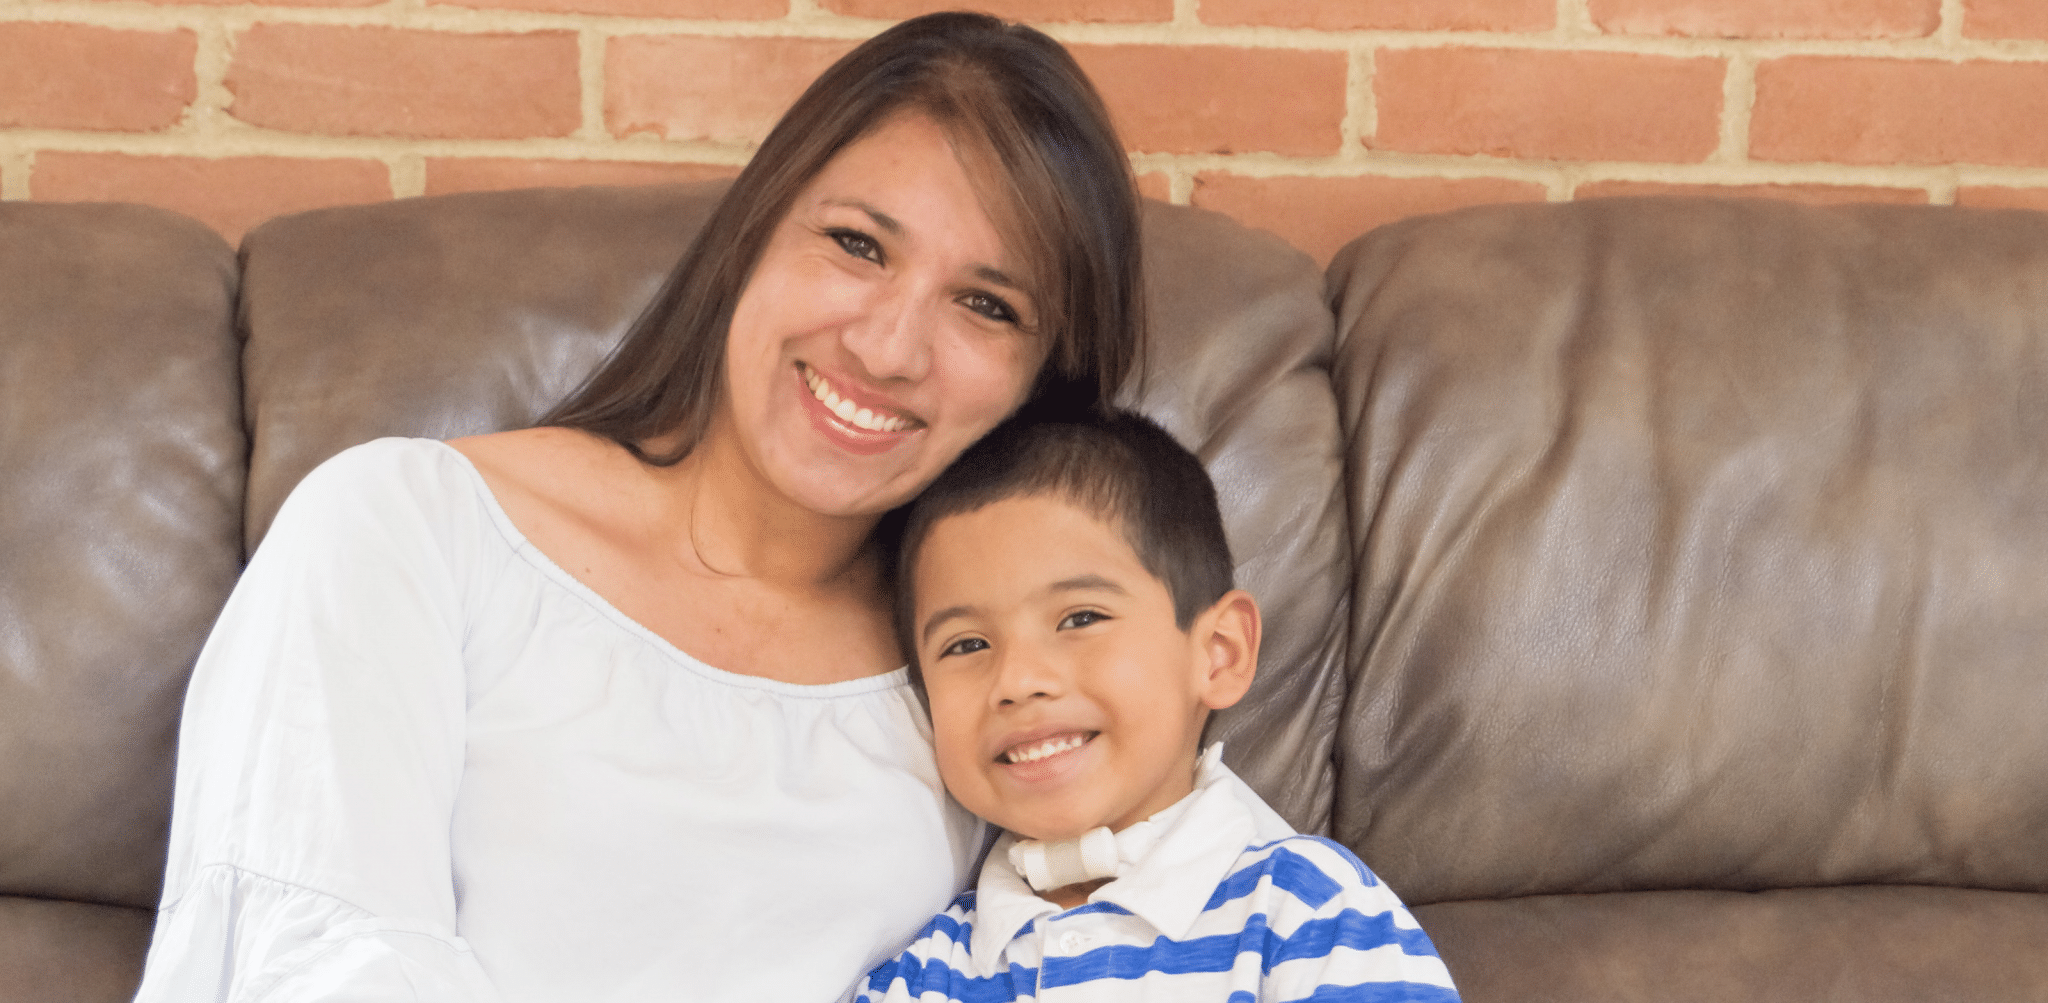 Mother and son with trach smiling on couch